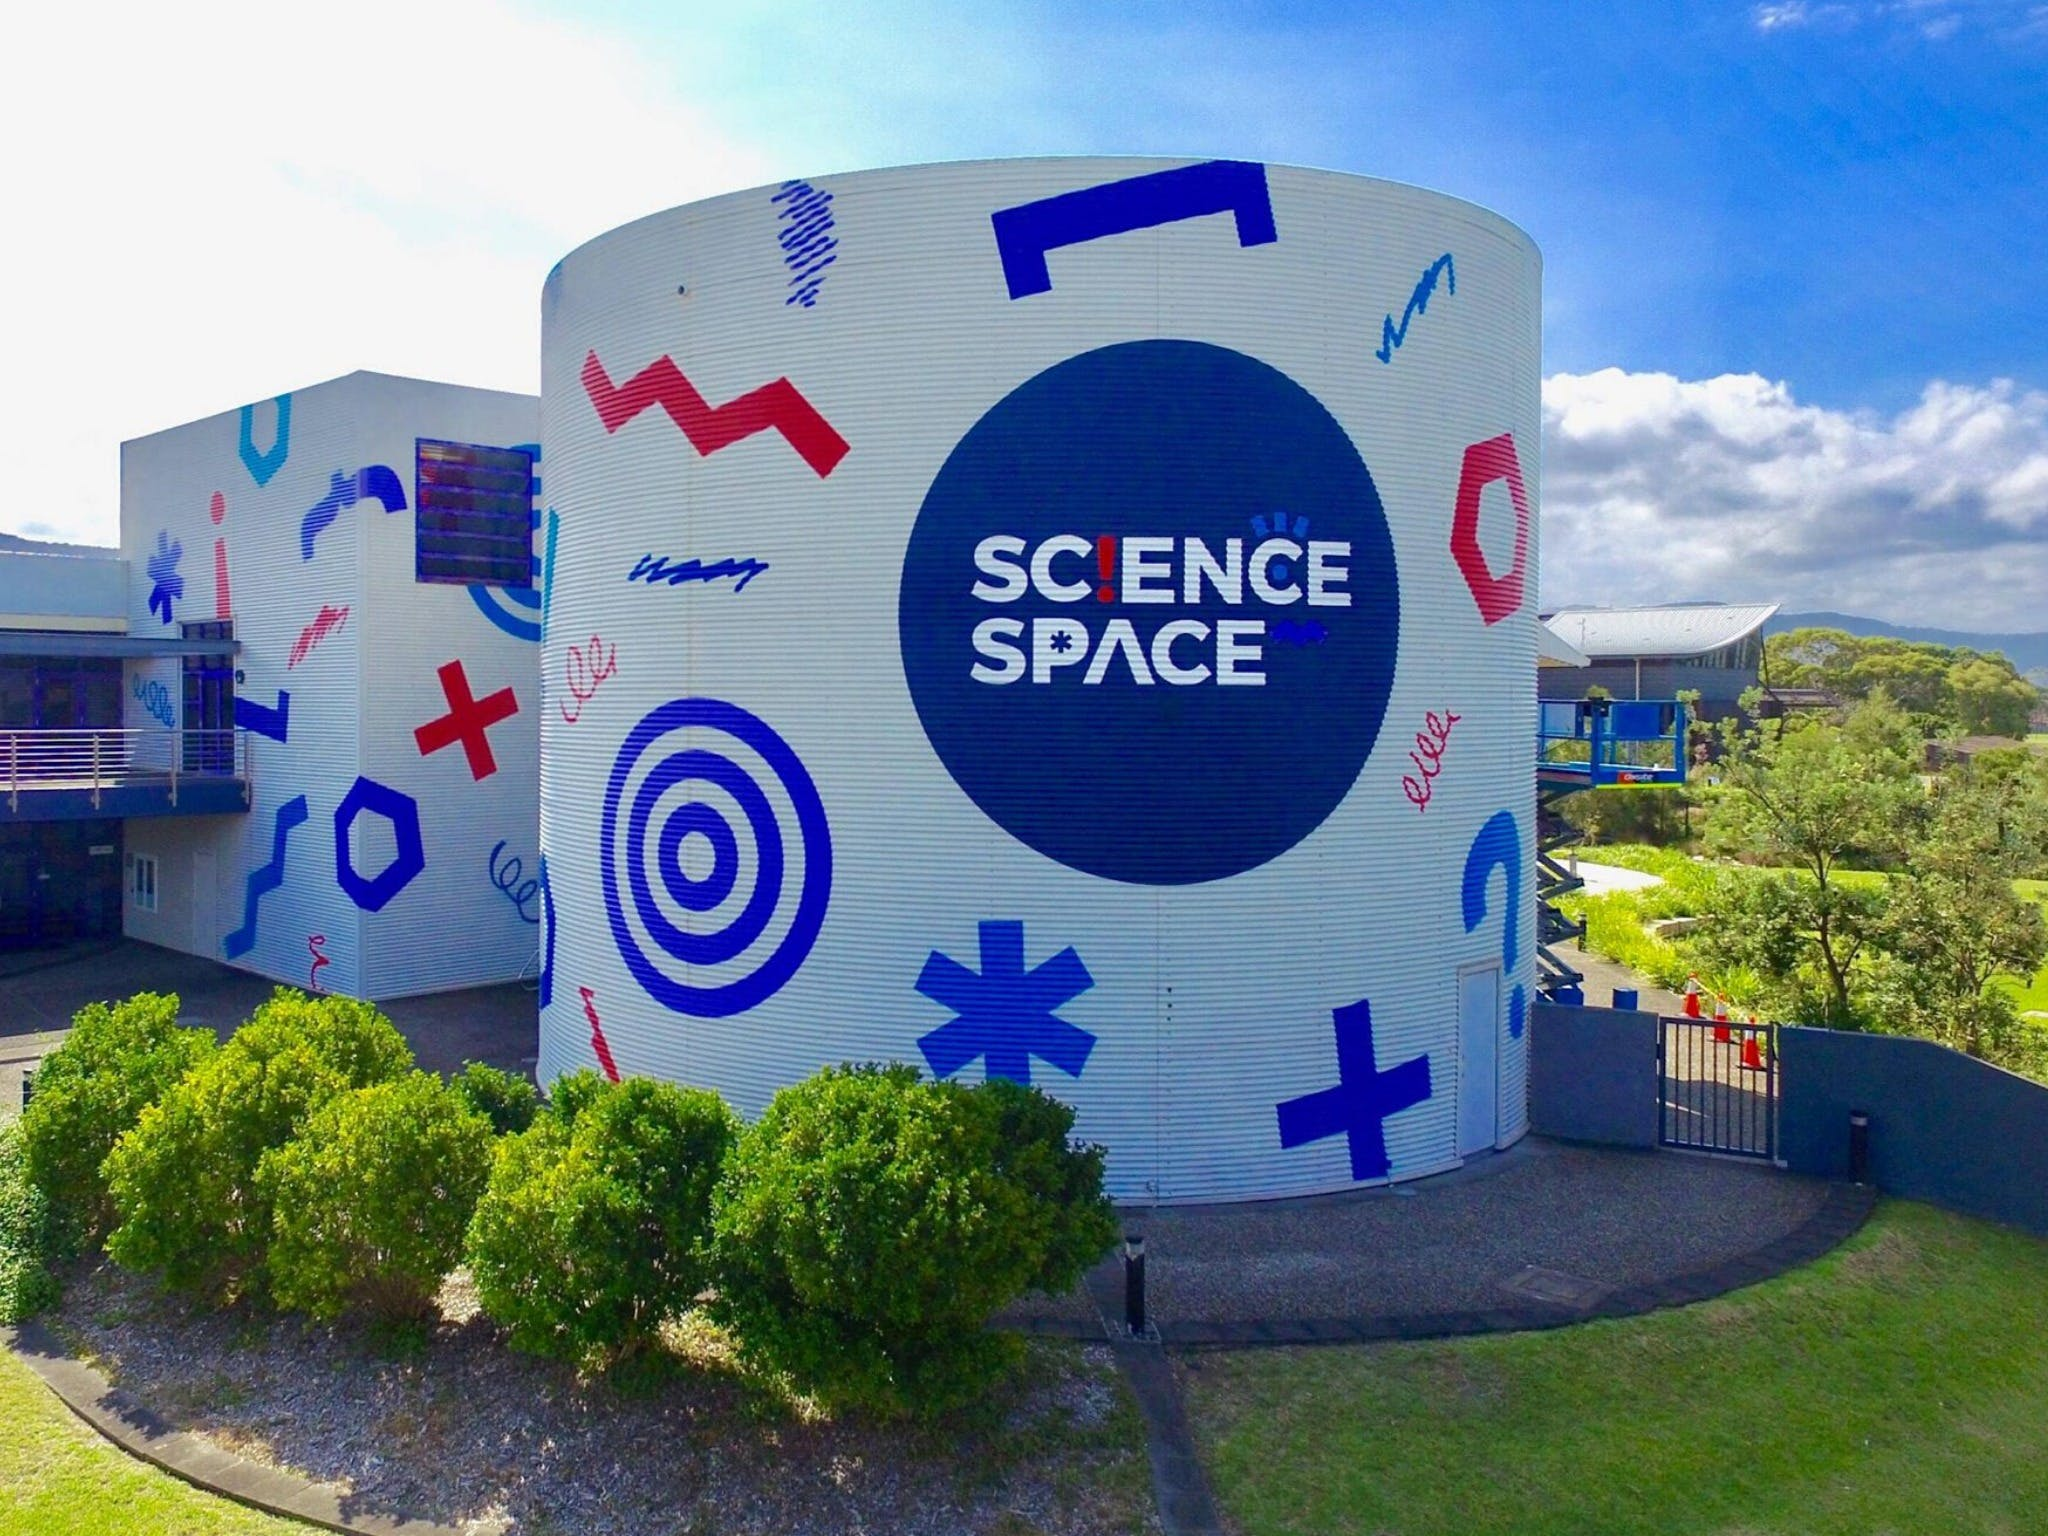 Science Space Grand Reopening Celebration - Accommodation Burleigh